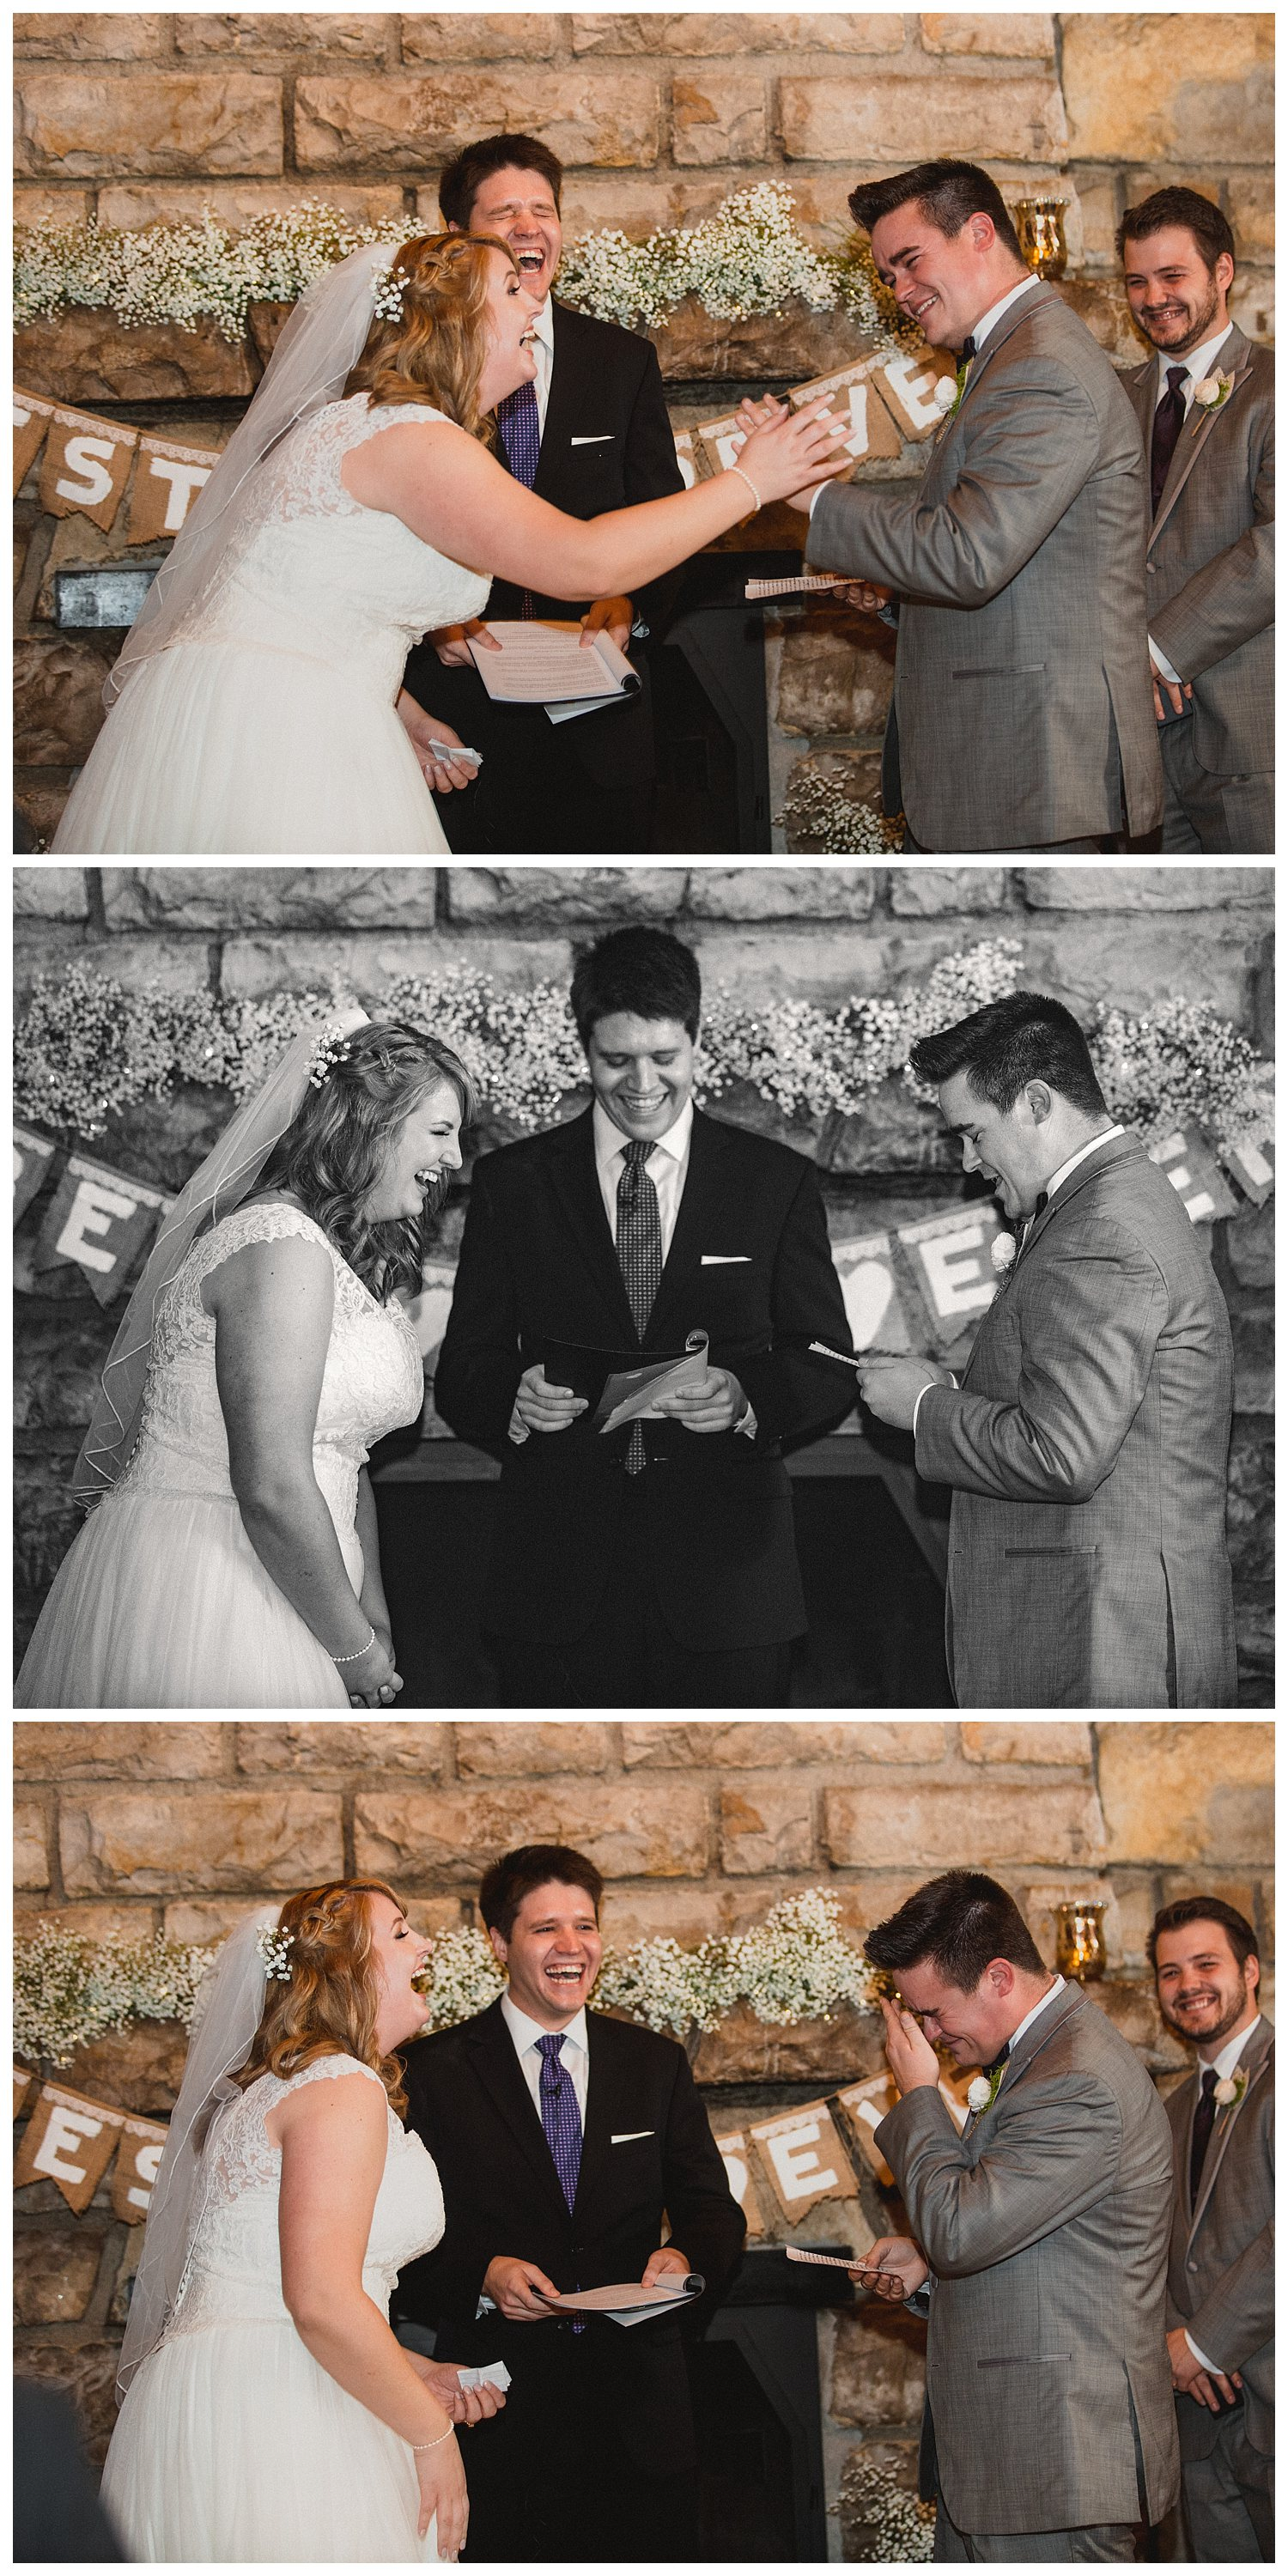 Kelsey_Diane_Photography_Loose_Mansion_Wedding_Photography_Kansas_City_Victor_Lyndsay_0378.jpg